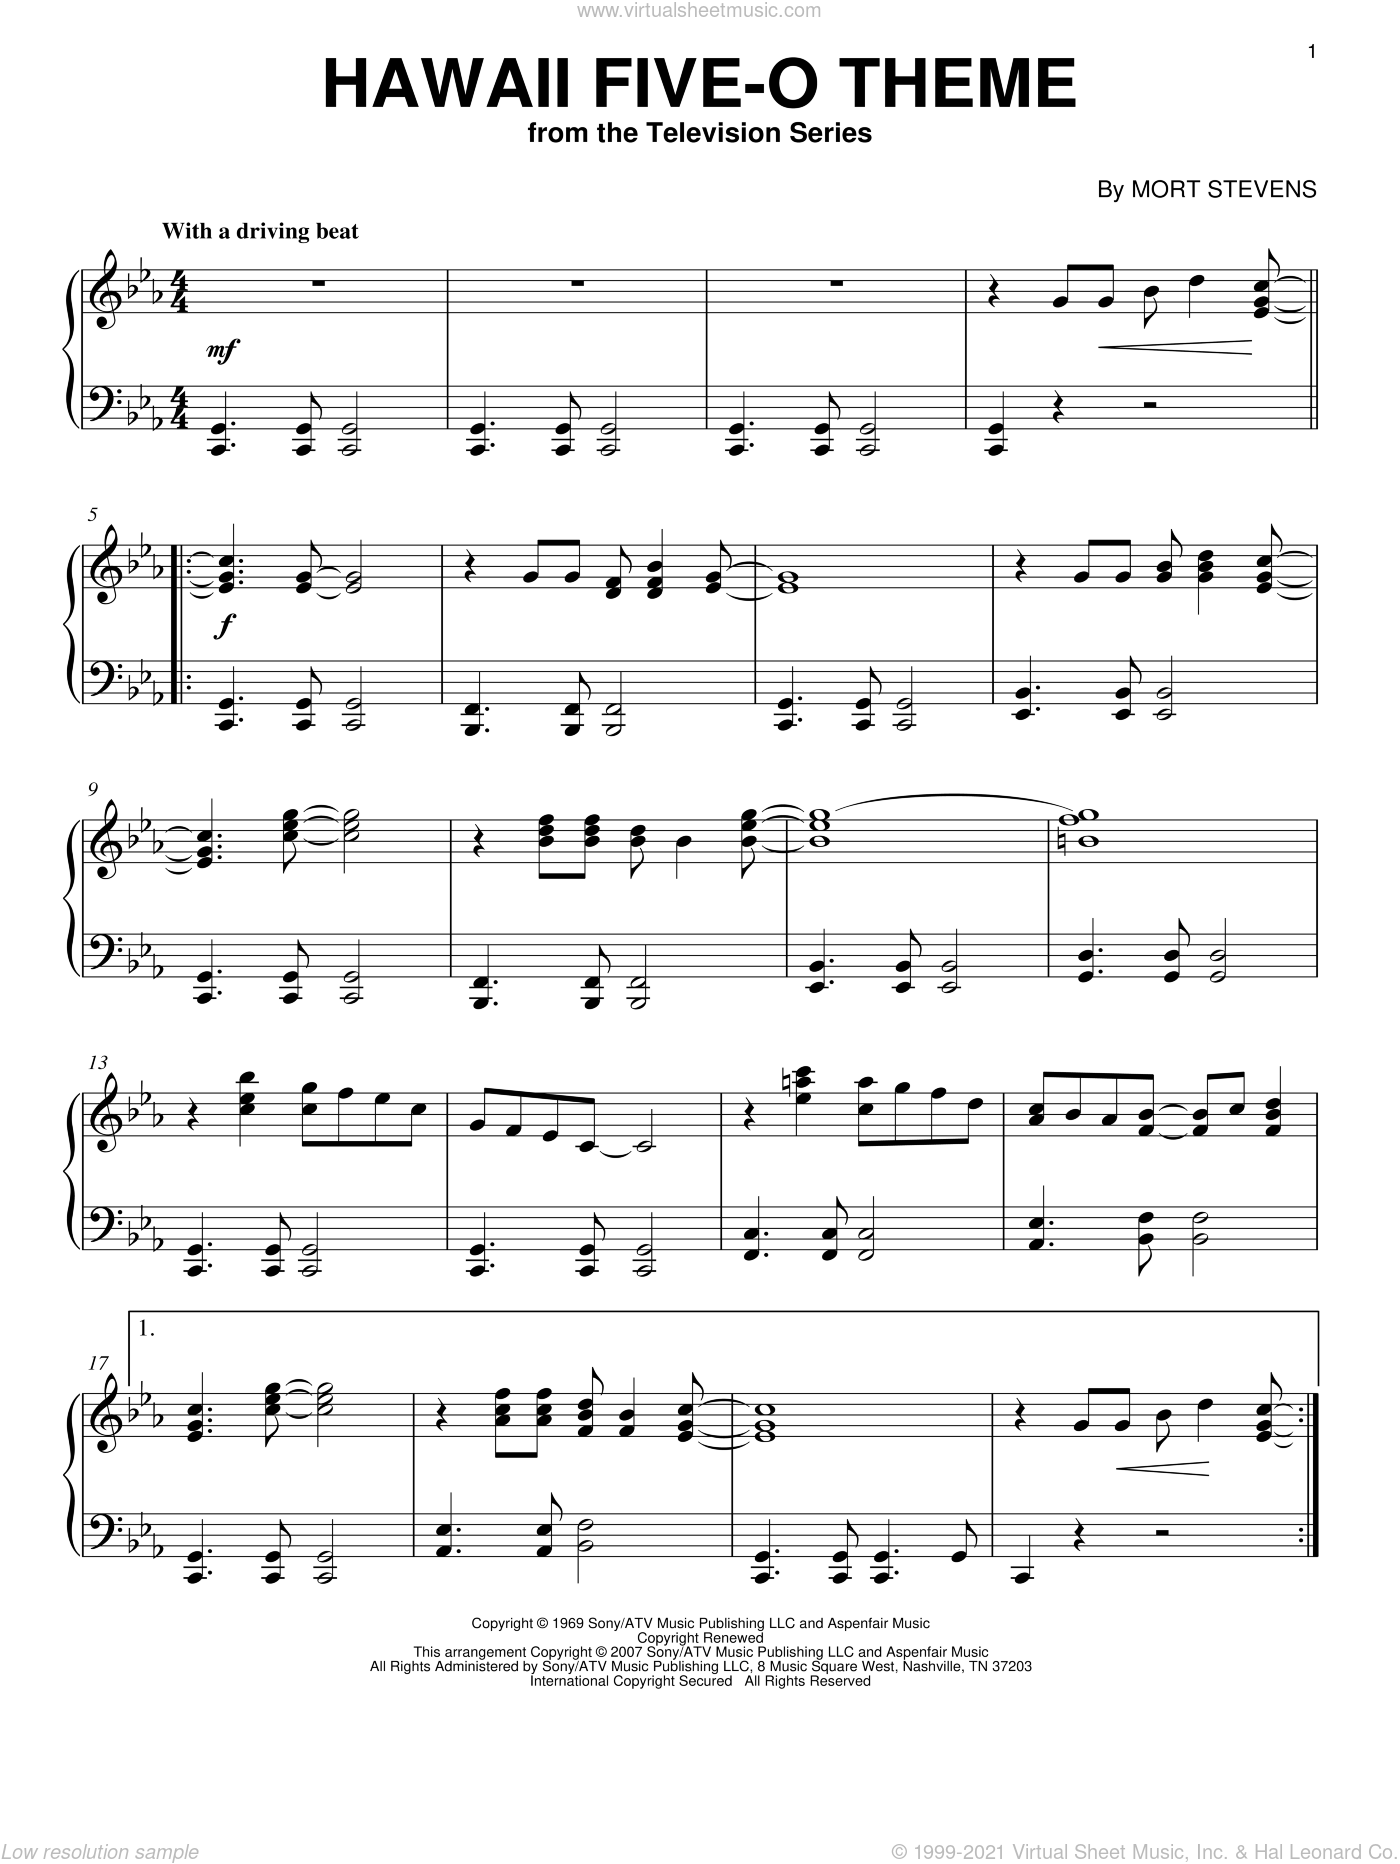 Hawaii Five-O Theme sheet music for piano solo by Mort Stevens